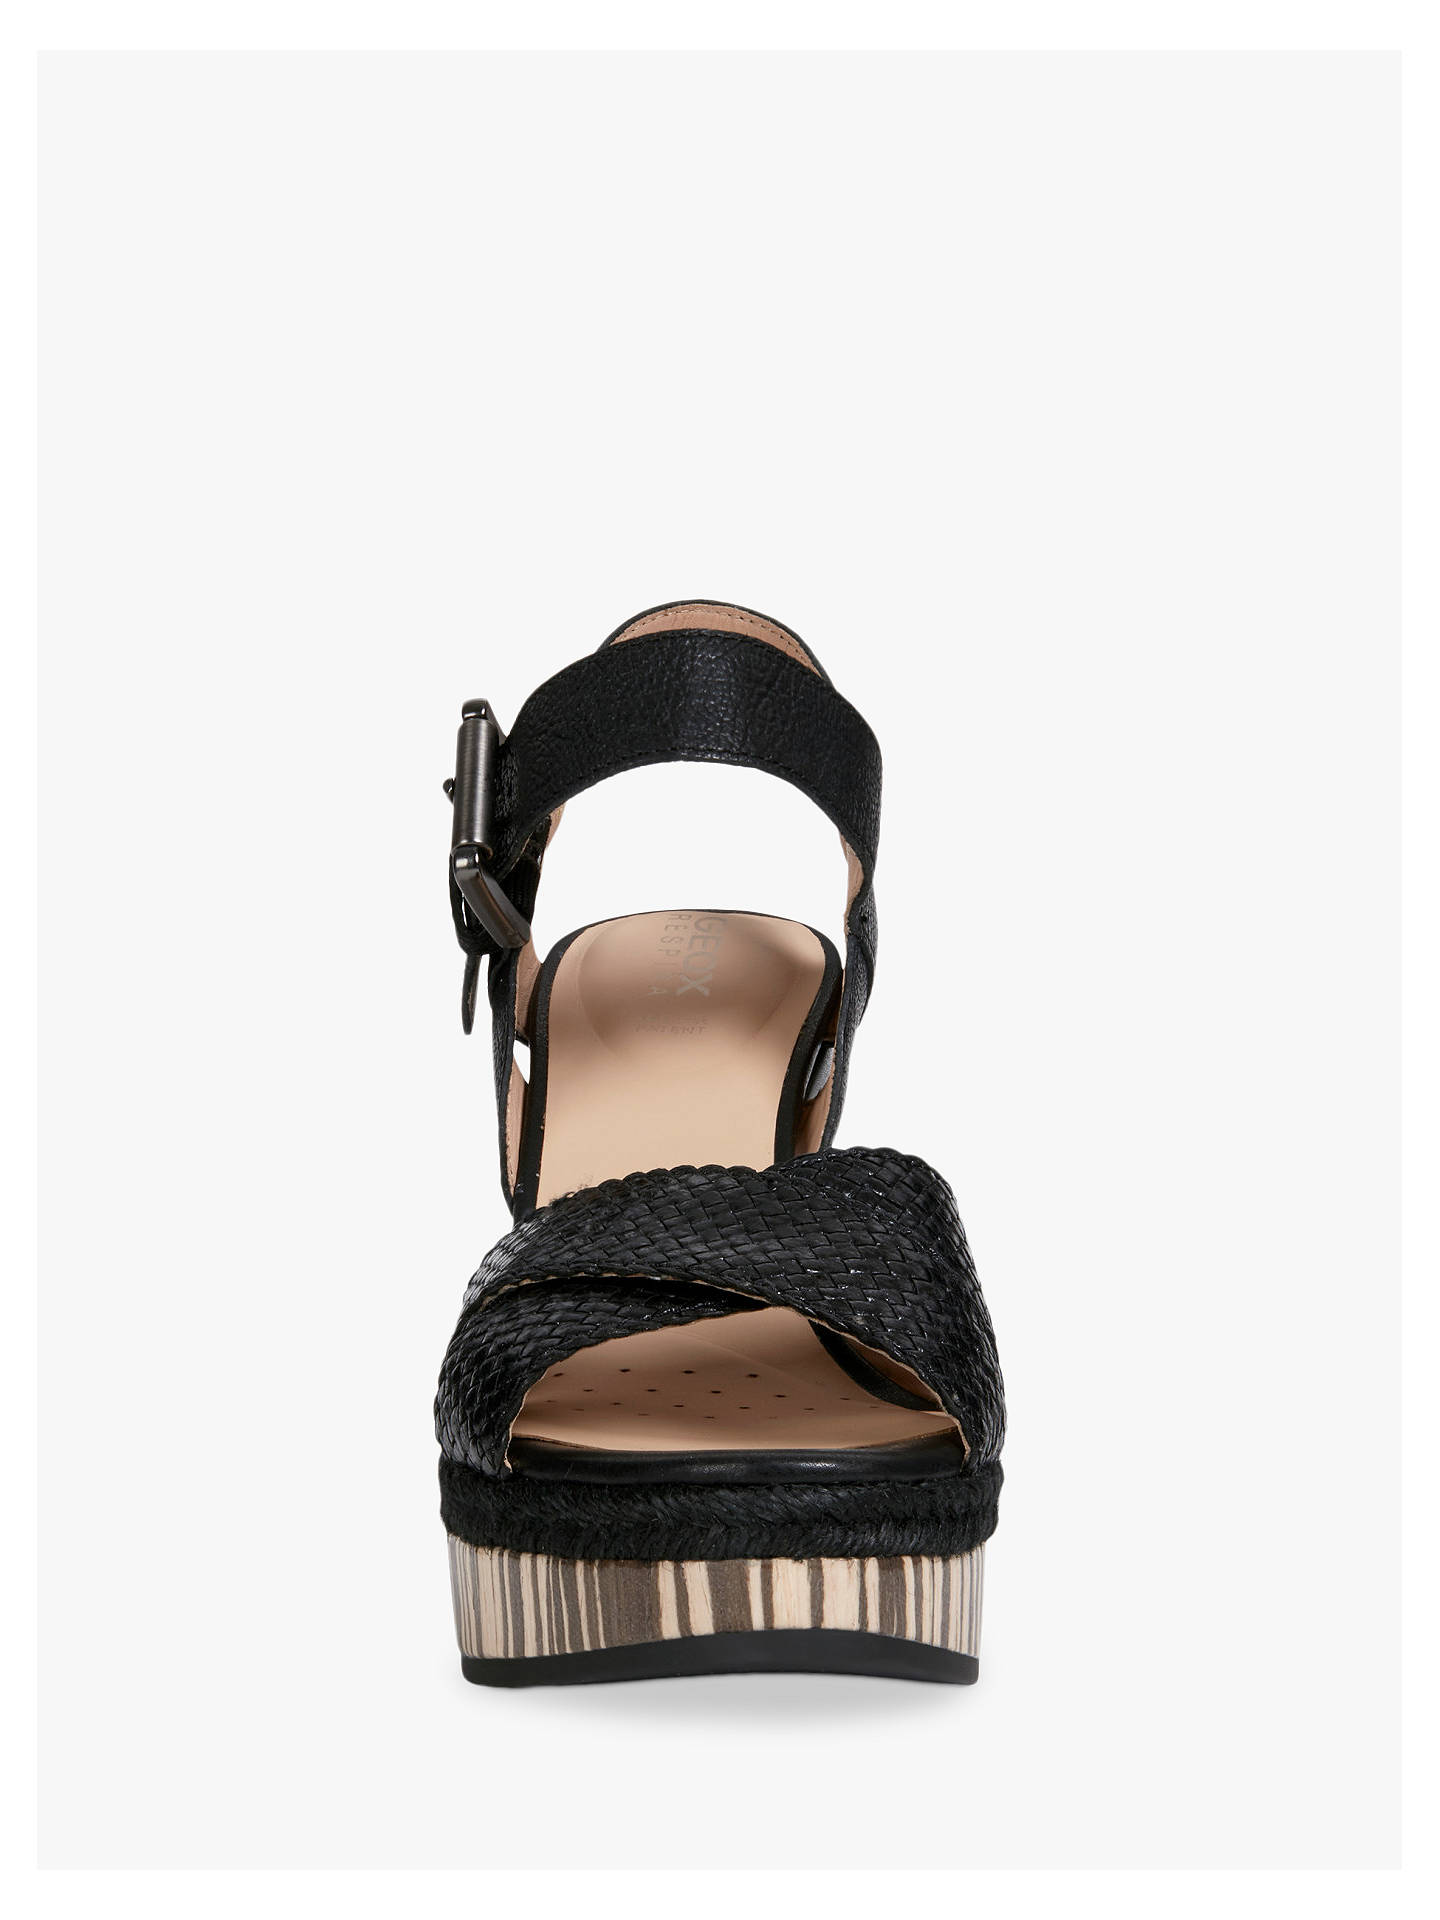 643bbed044d Geox Women s Yulimar Wedge Heeled Sandals at John Lewis   Partners